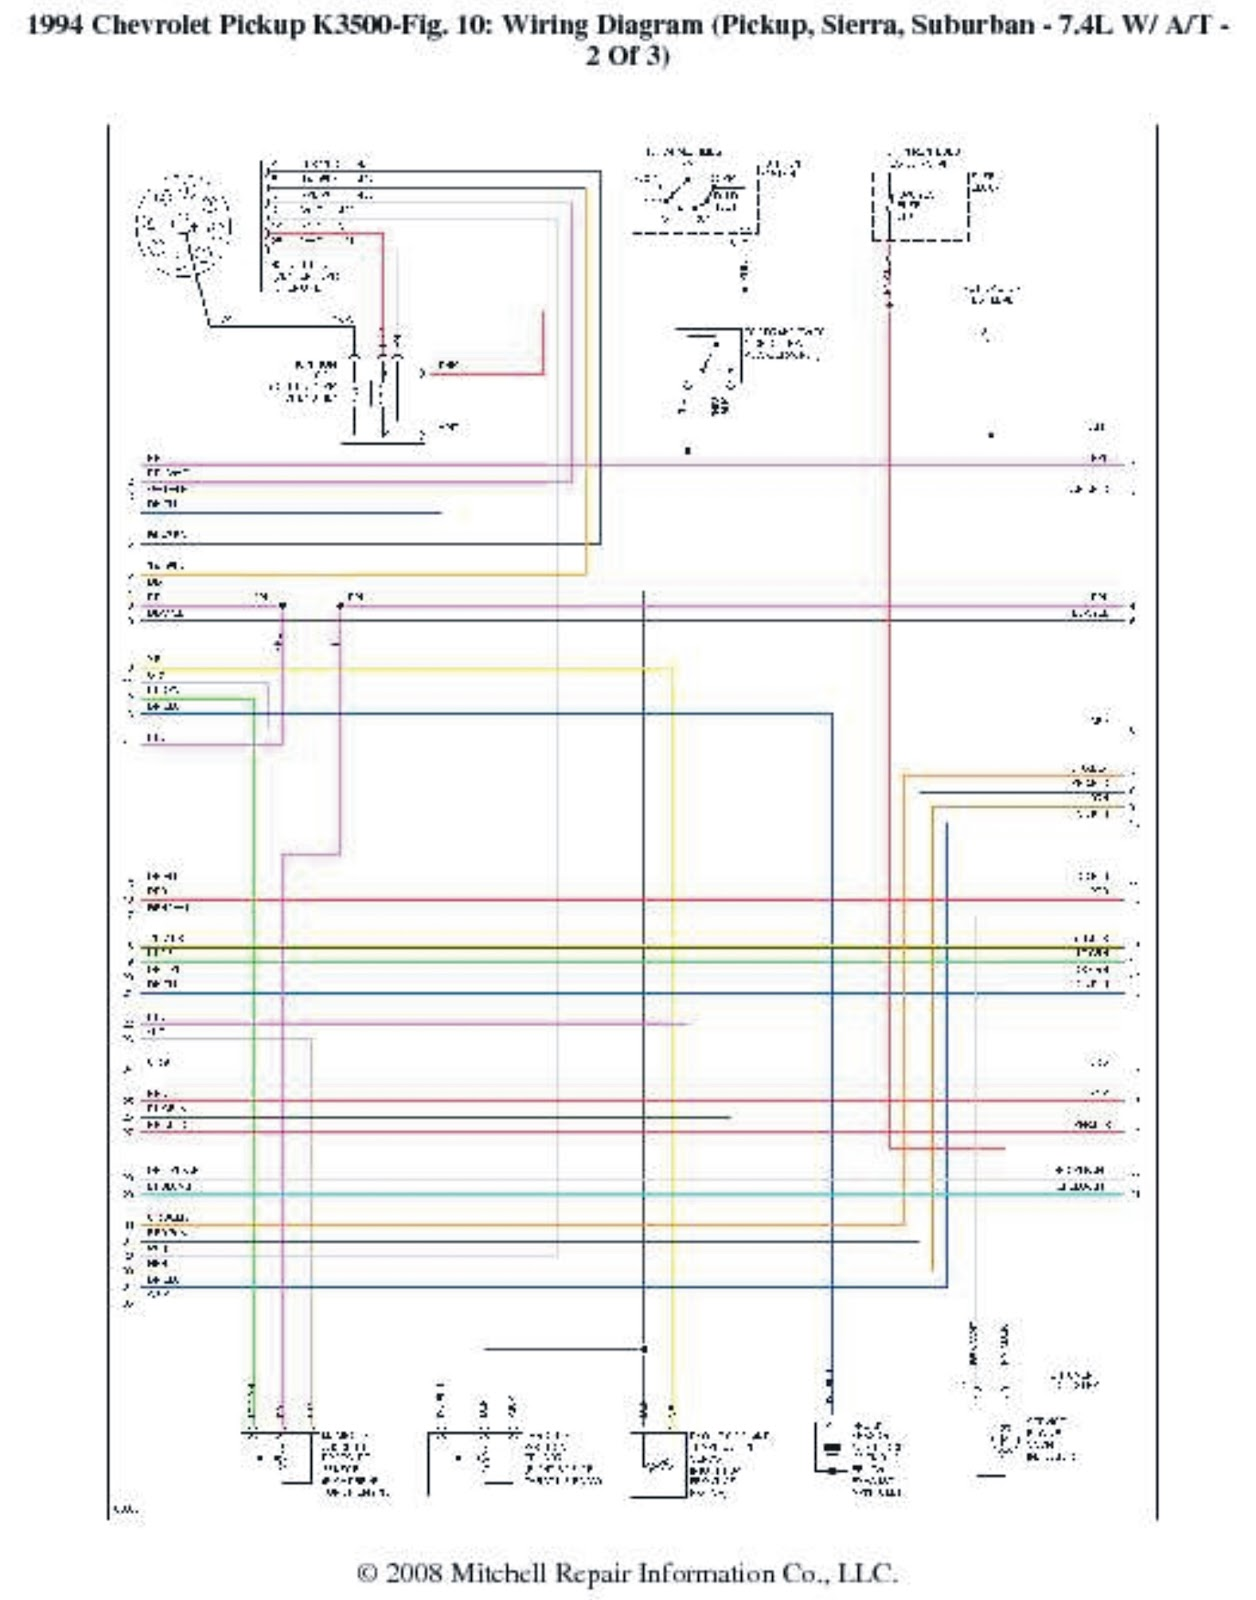 94 s10 engine diagram best wiring library S 10 Truck Wiring Diagram 1994 chevy s10 wiring diagram another blog about wiring diagram u2022 rh ok2 infoservice ru 1995